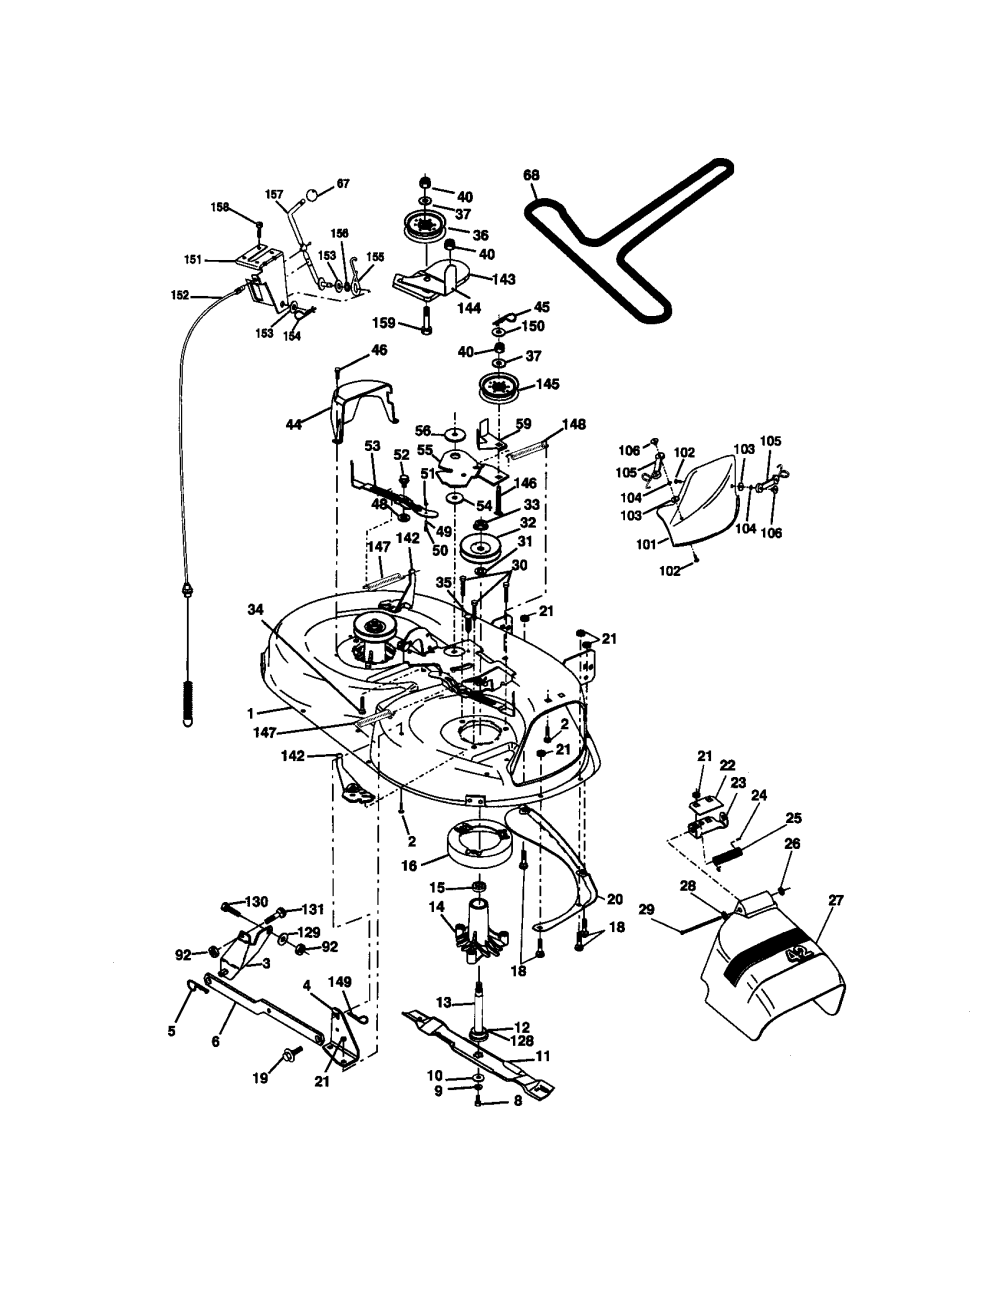 hight resolution of  medium resolution of scott s1642 lawn mower wiring diagram free download